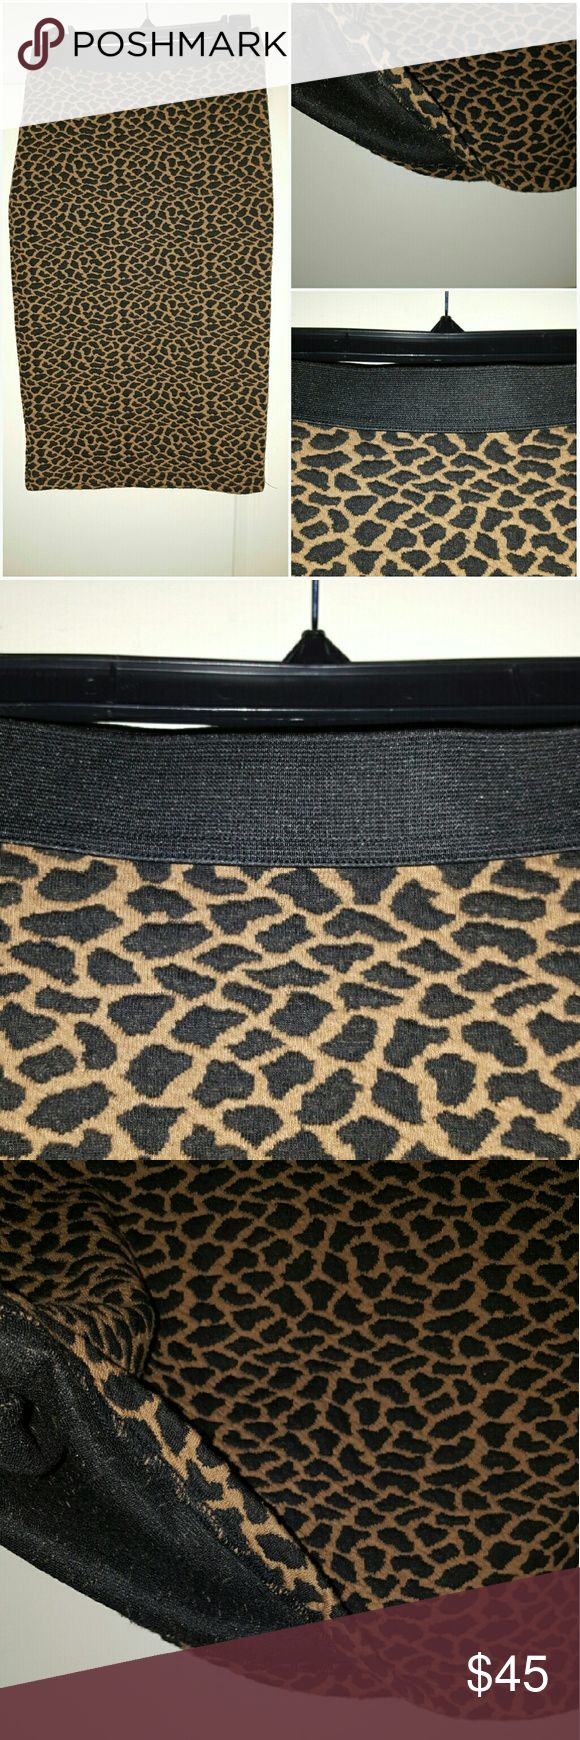 Leopard Pencil Skirt Slimming look of a stretch-knit pencil skirt patterned in a leopard graphic. Skirts Pencil